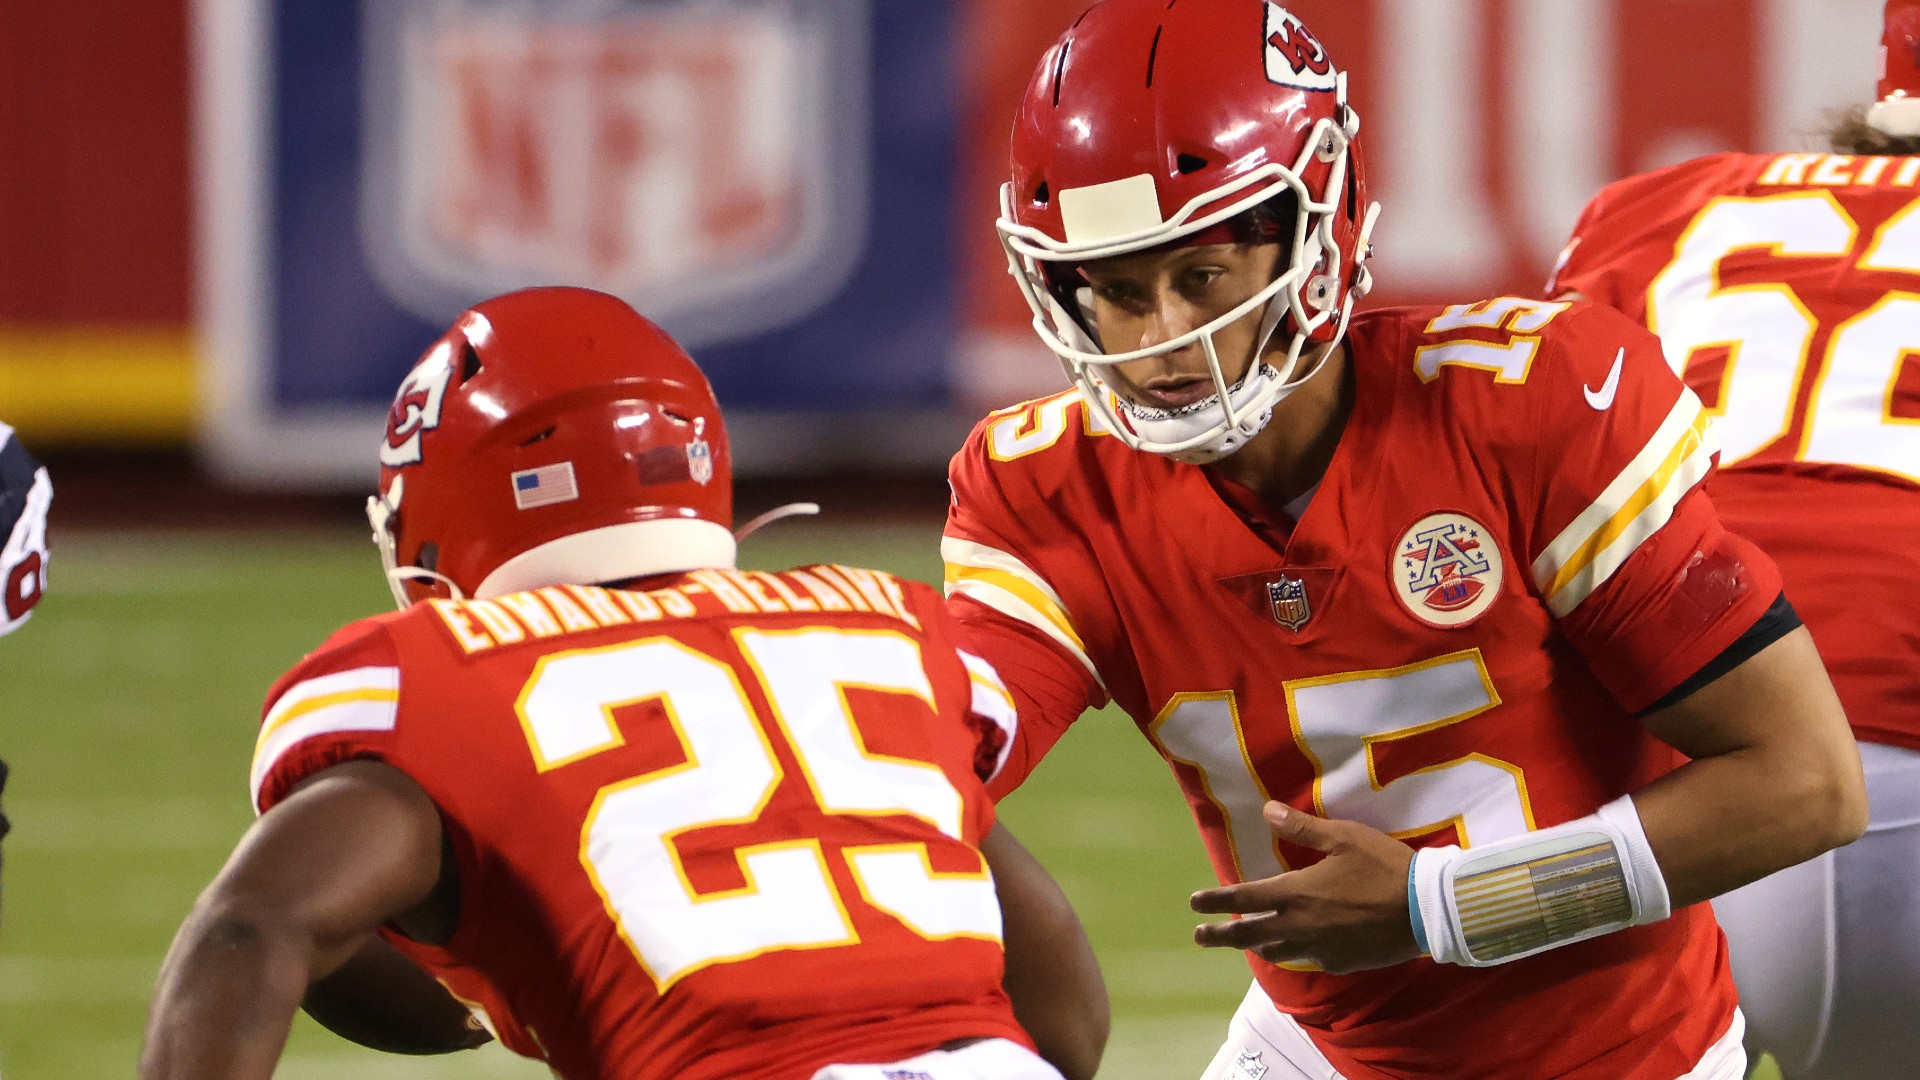 https://images.daznservices.com/di/library/sporting_news/a7/a0/patrick-mahomes-clyde-edwards-helaire-091020-getty-ftr_1pfrhvdnqaq851m4gfqw3bgn4a.jpg?t=2074290068&quality=100